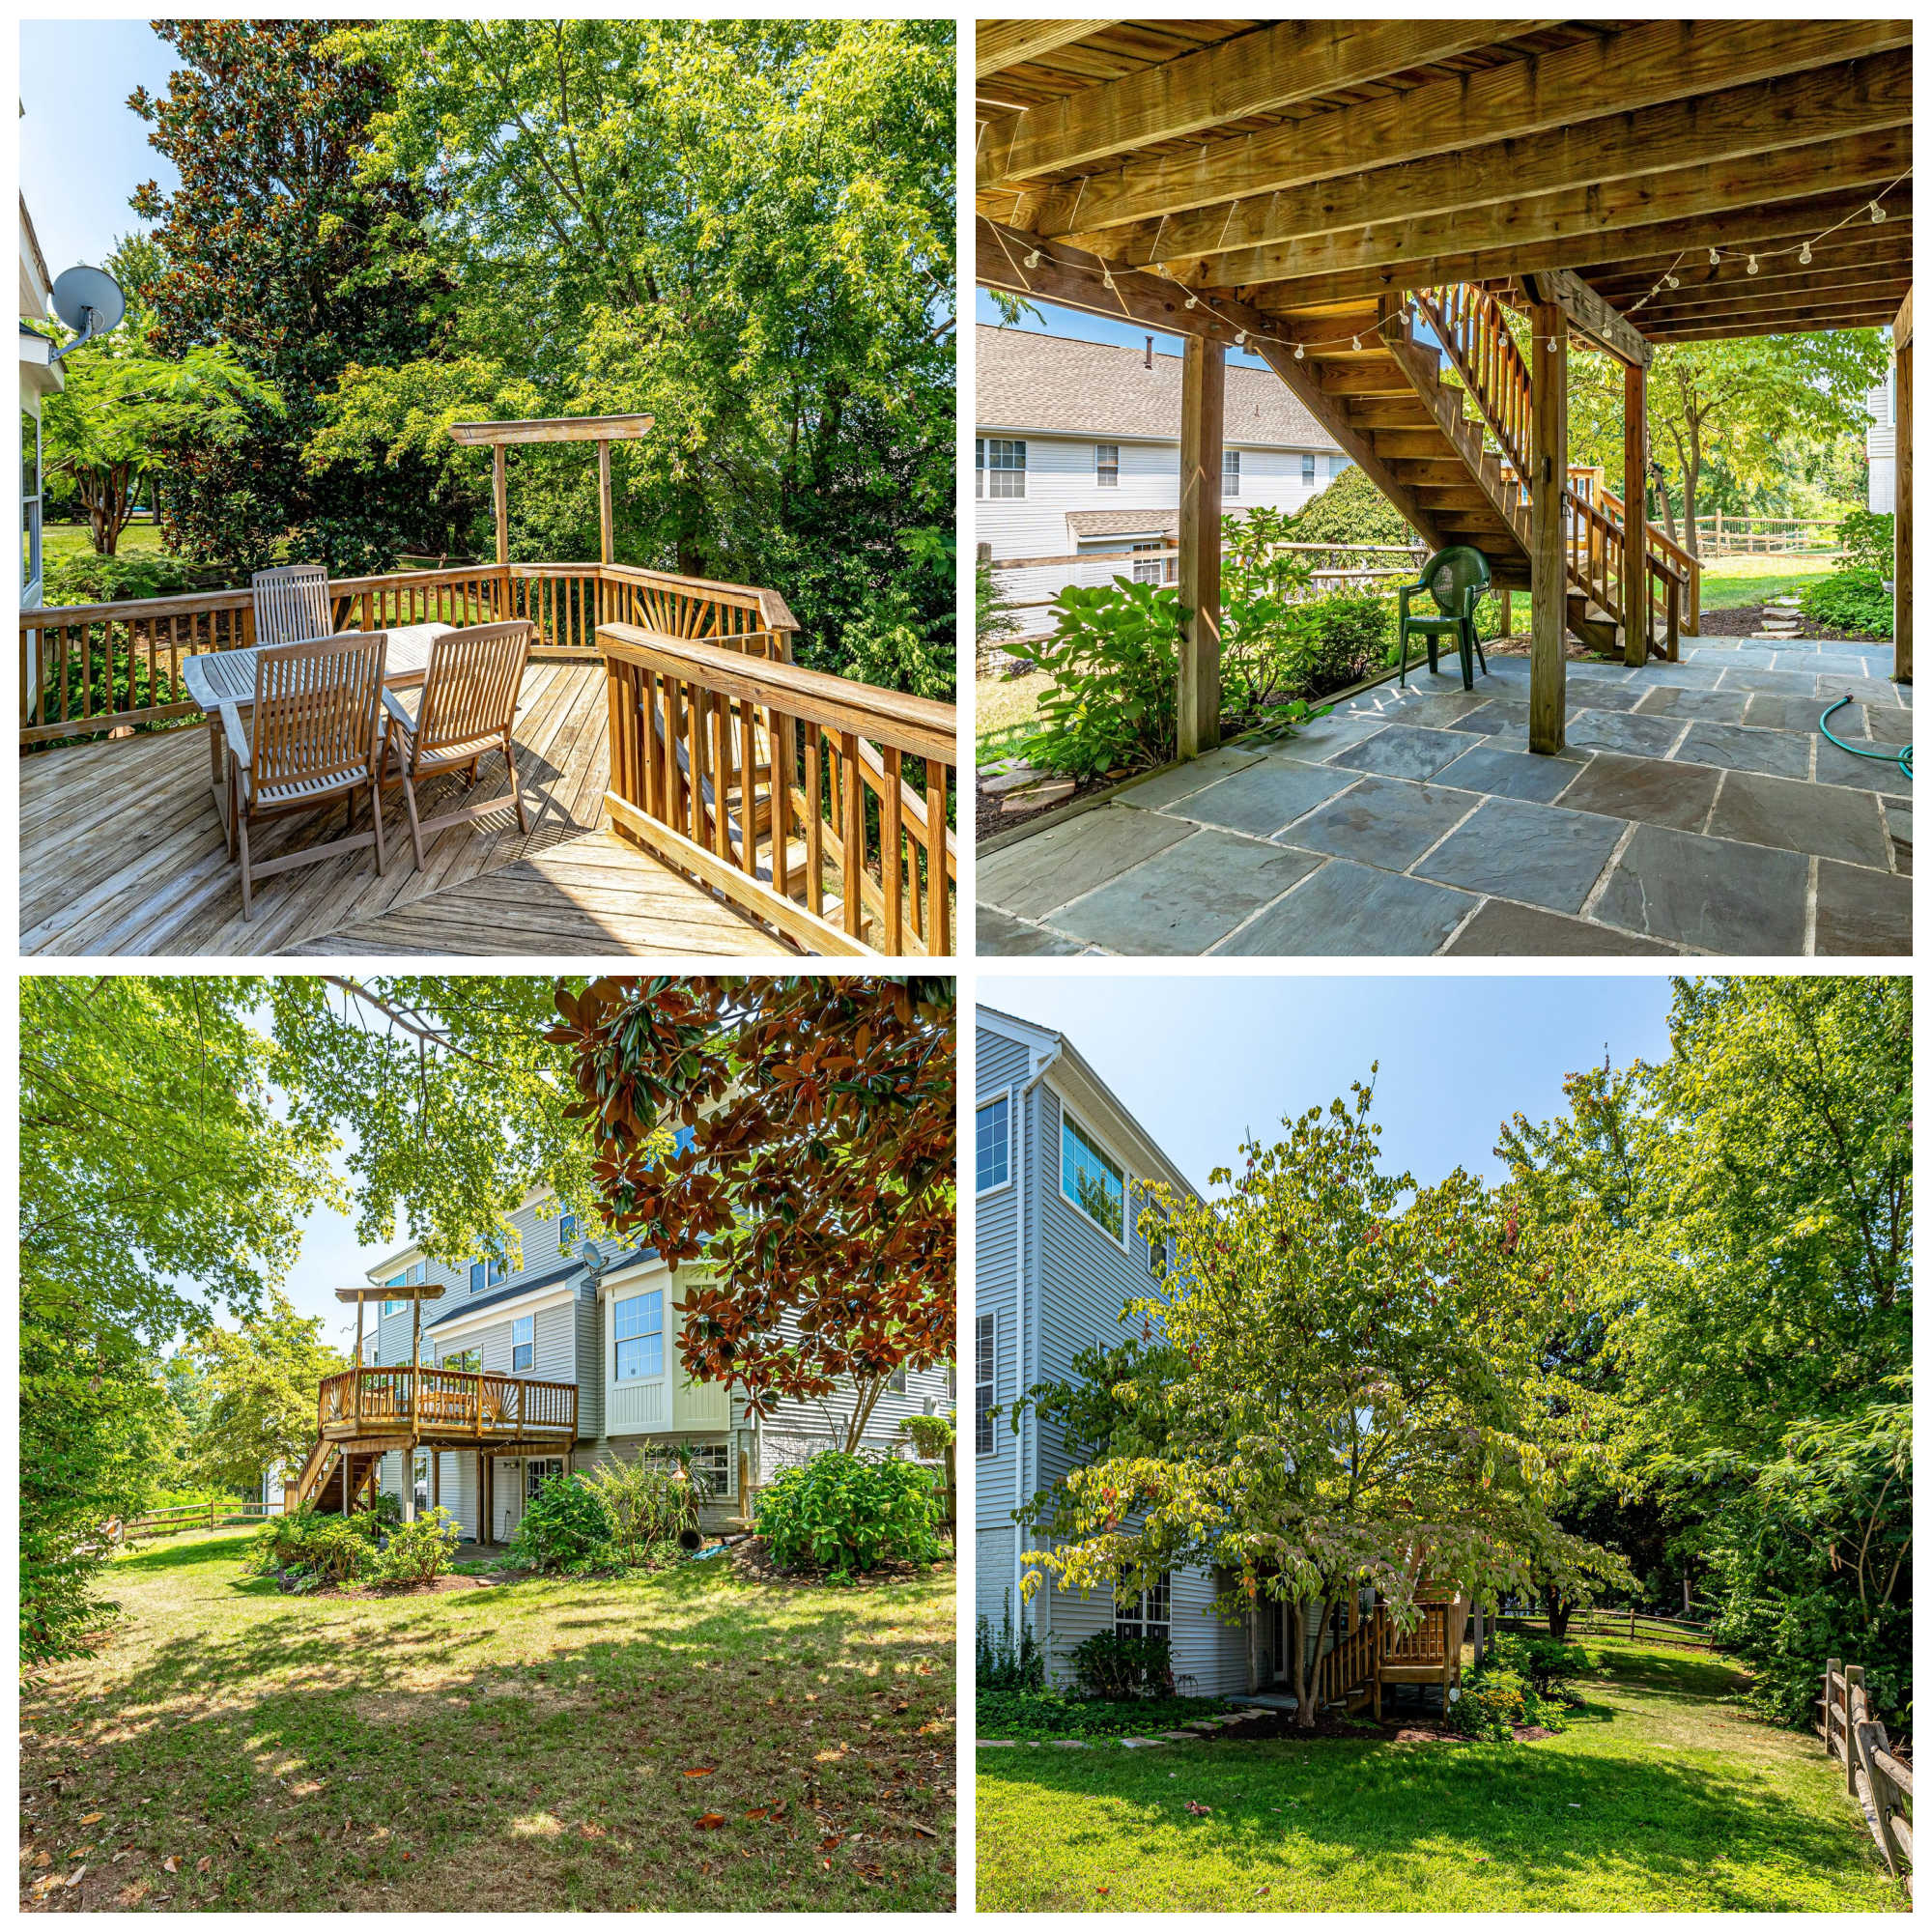 20485 Inwood Ct, Sterling- Deck, Patio, and Yard